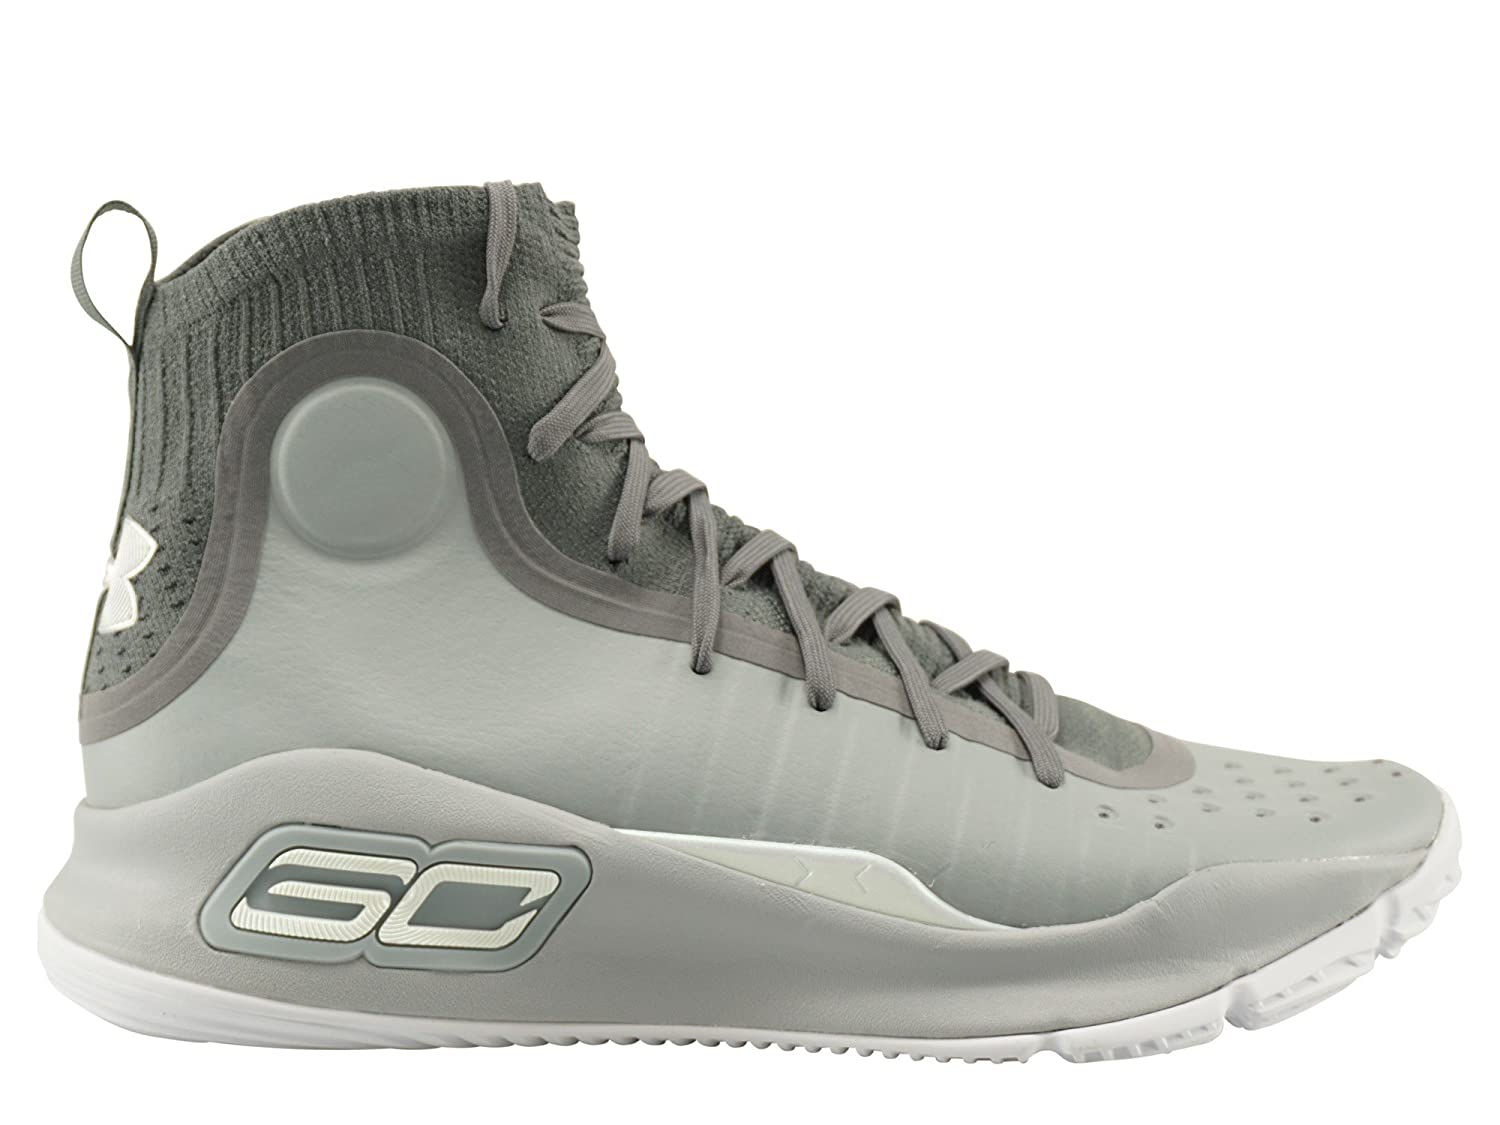 best service f2962 9ff7c Under Armour Curry 4 Gray